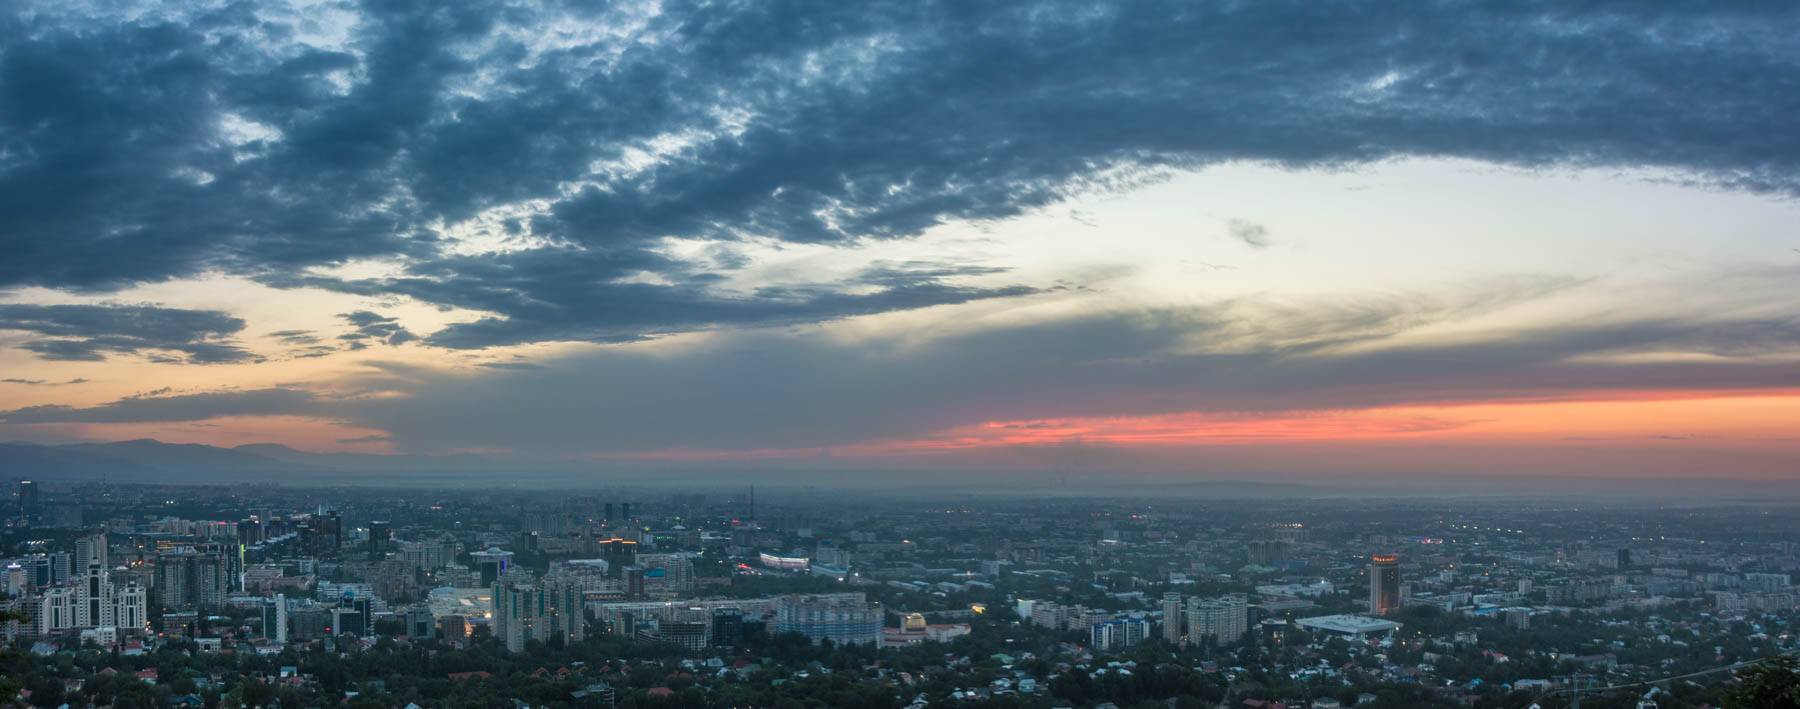 A panoramic sunset view of Almaty, Kazakhstan - Lost With Purpose